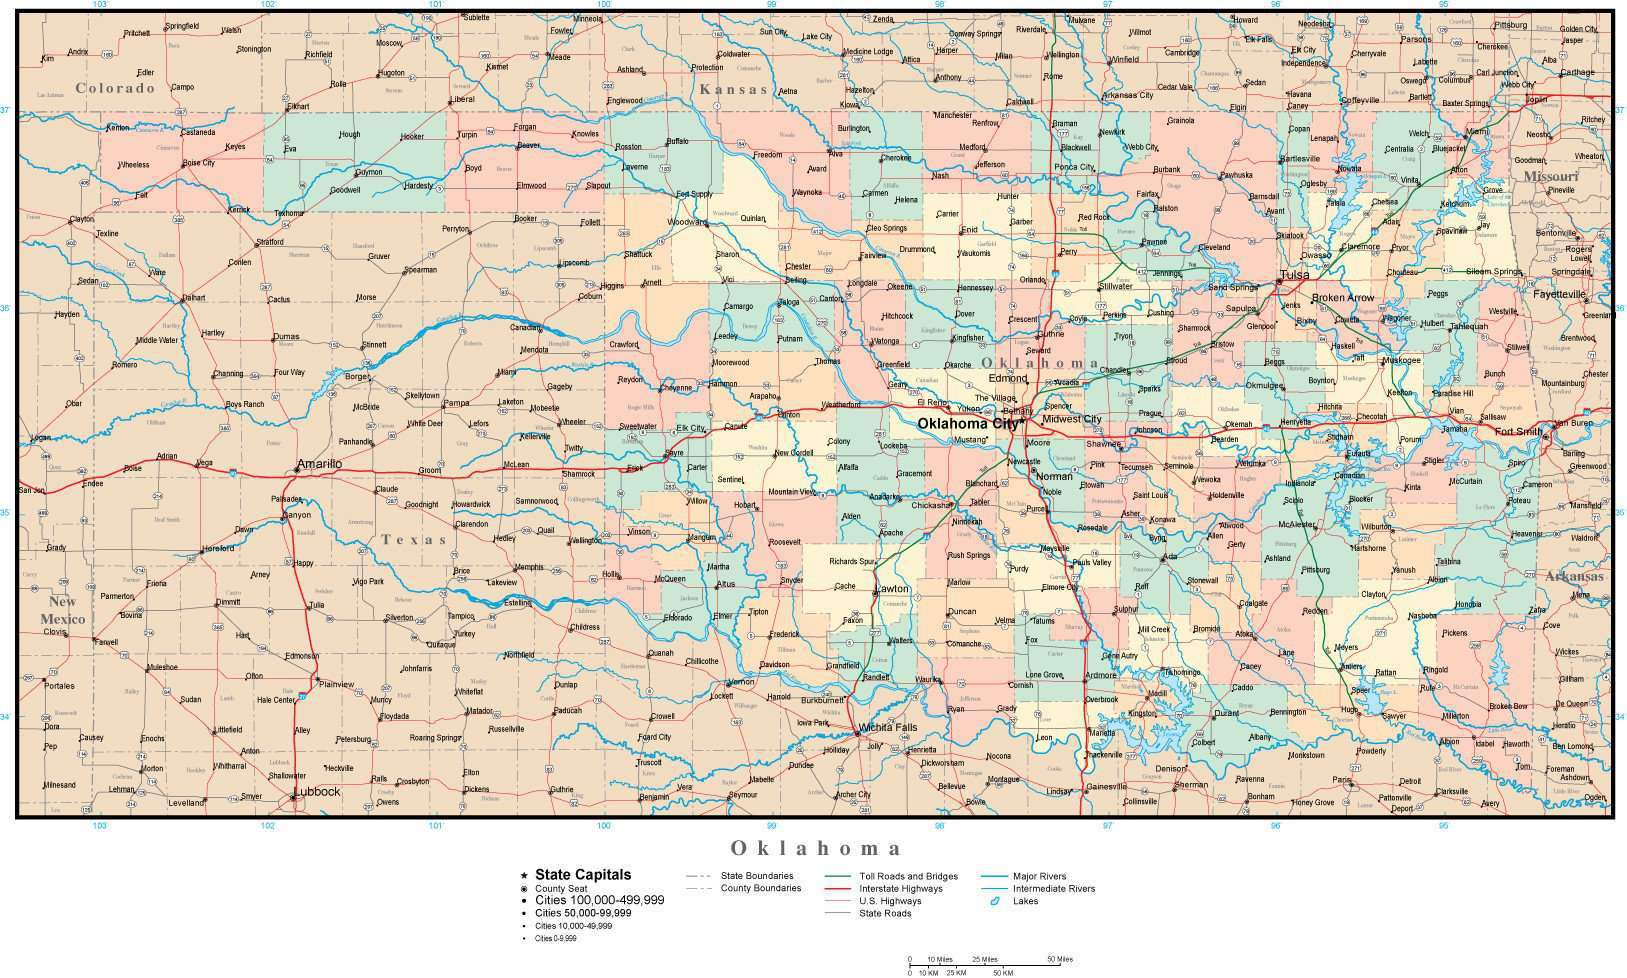 Picture of: Oklahoma Adobe Illustrator Map With Counties Cities County Seats Major Roads